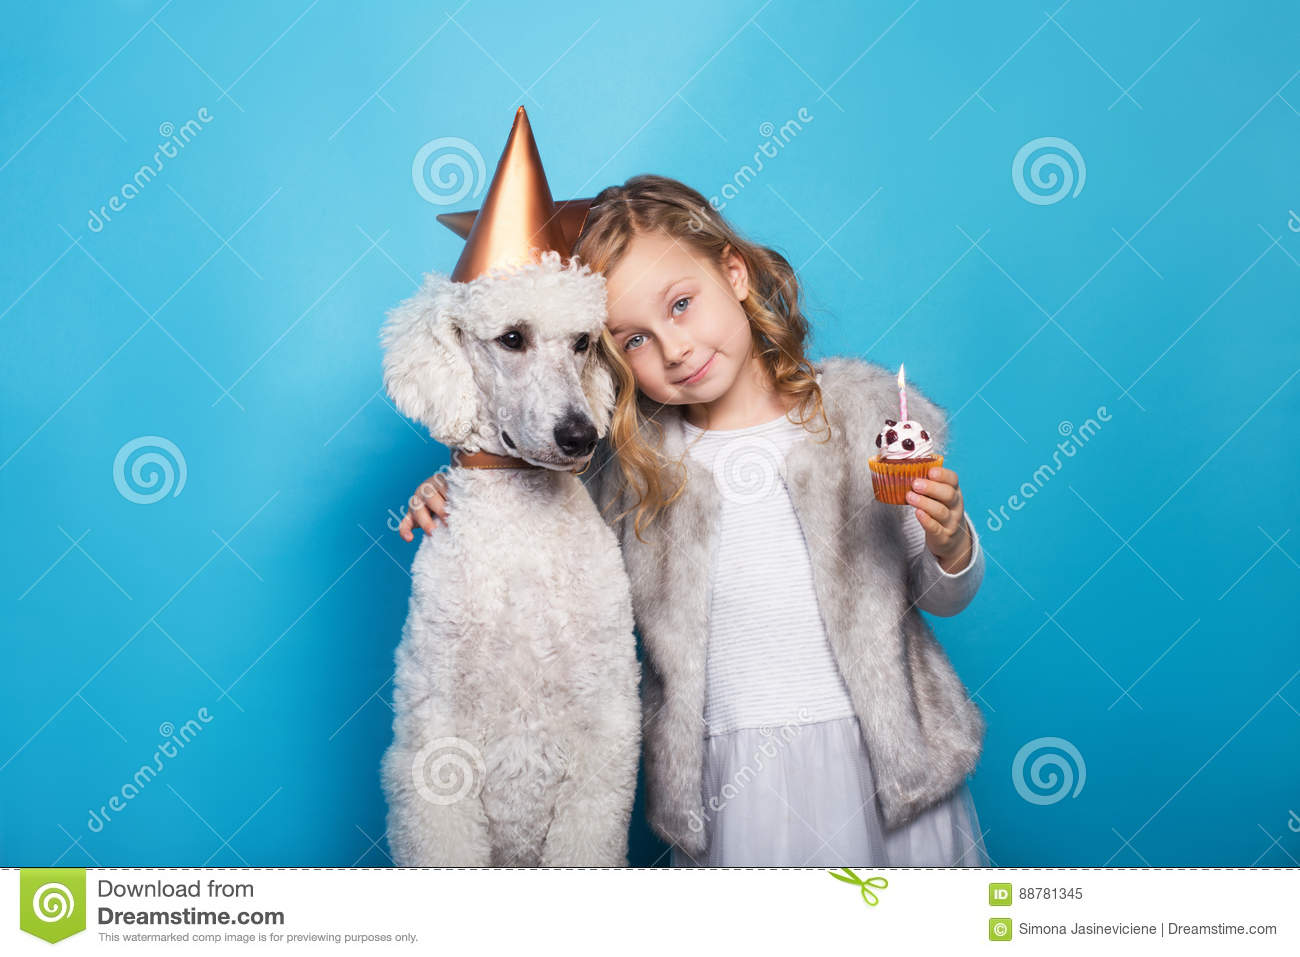 Little beautiful girl with dog celebrate birthday. Friendship. Love. Cake with candle. Studio portrait over blue background